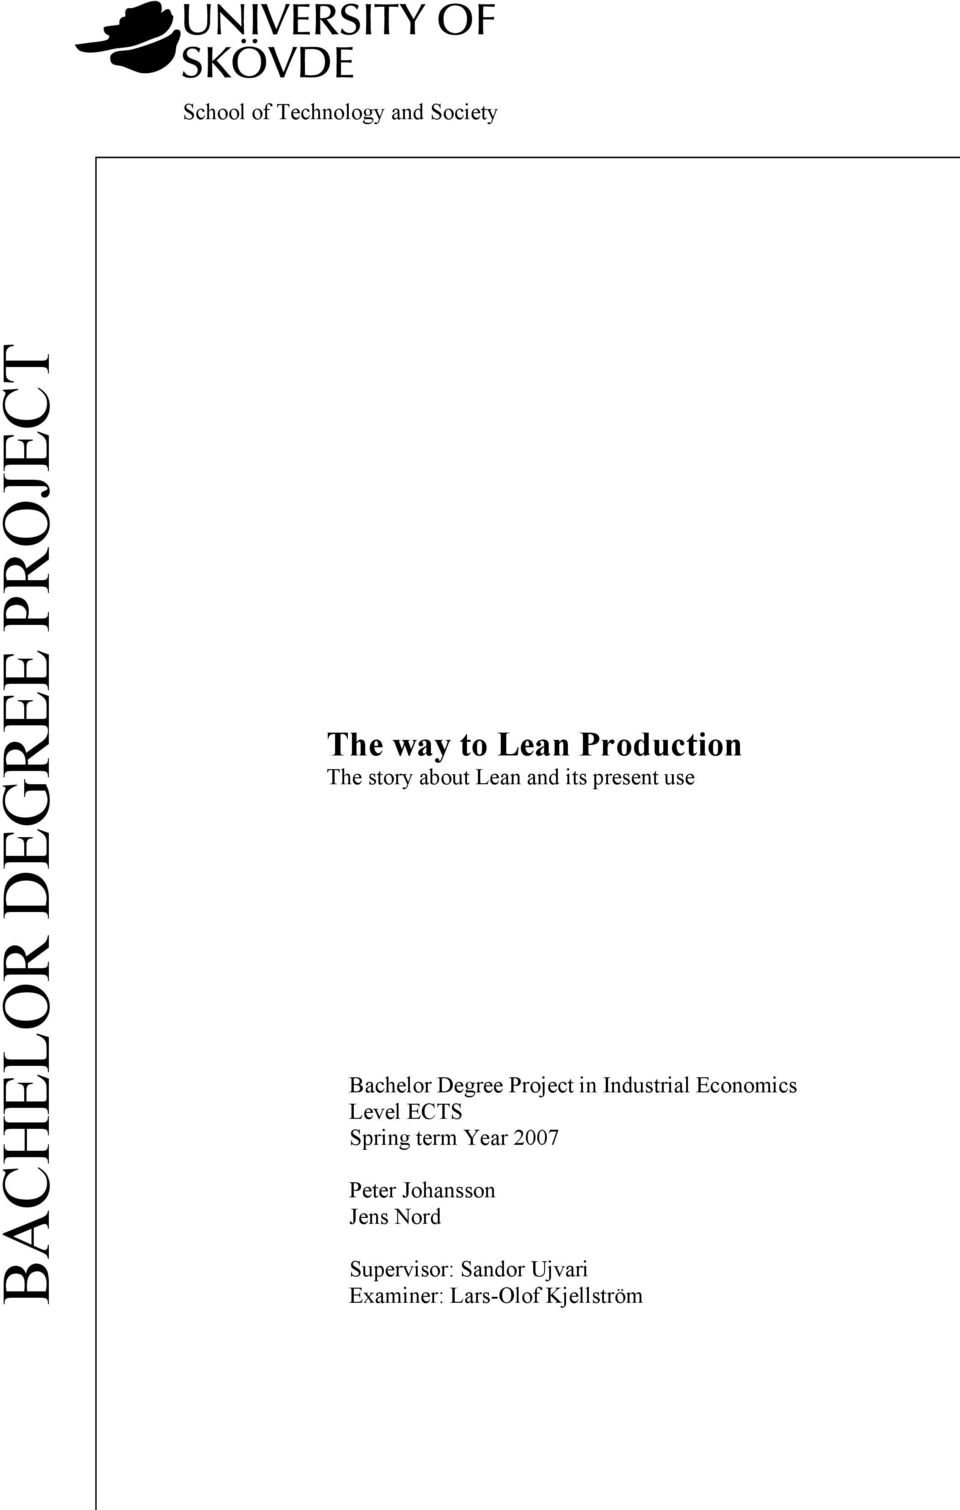 Project in Industrial Economics Level ECTS Spring term Year 2007 Peter